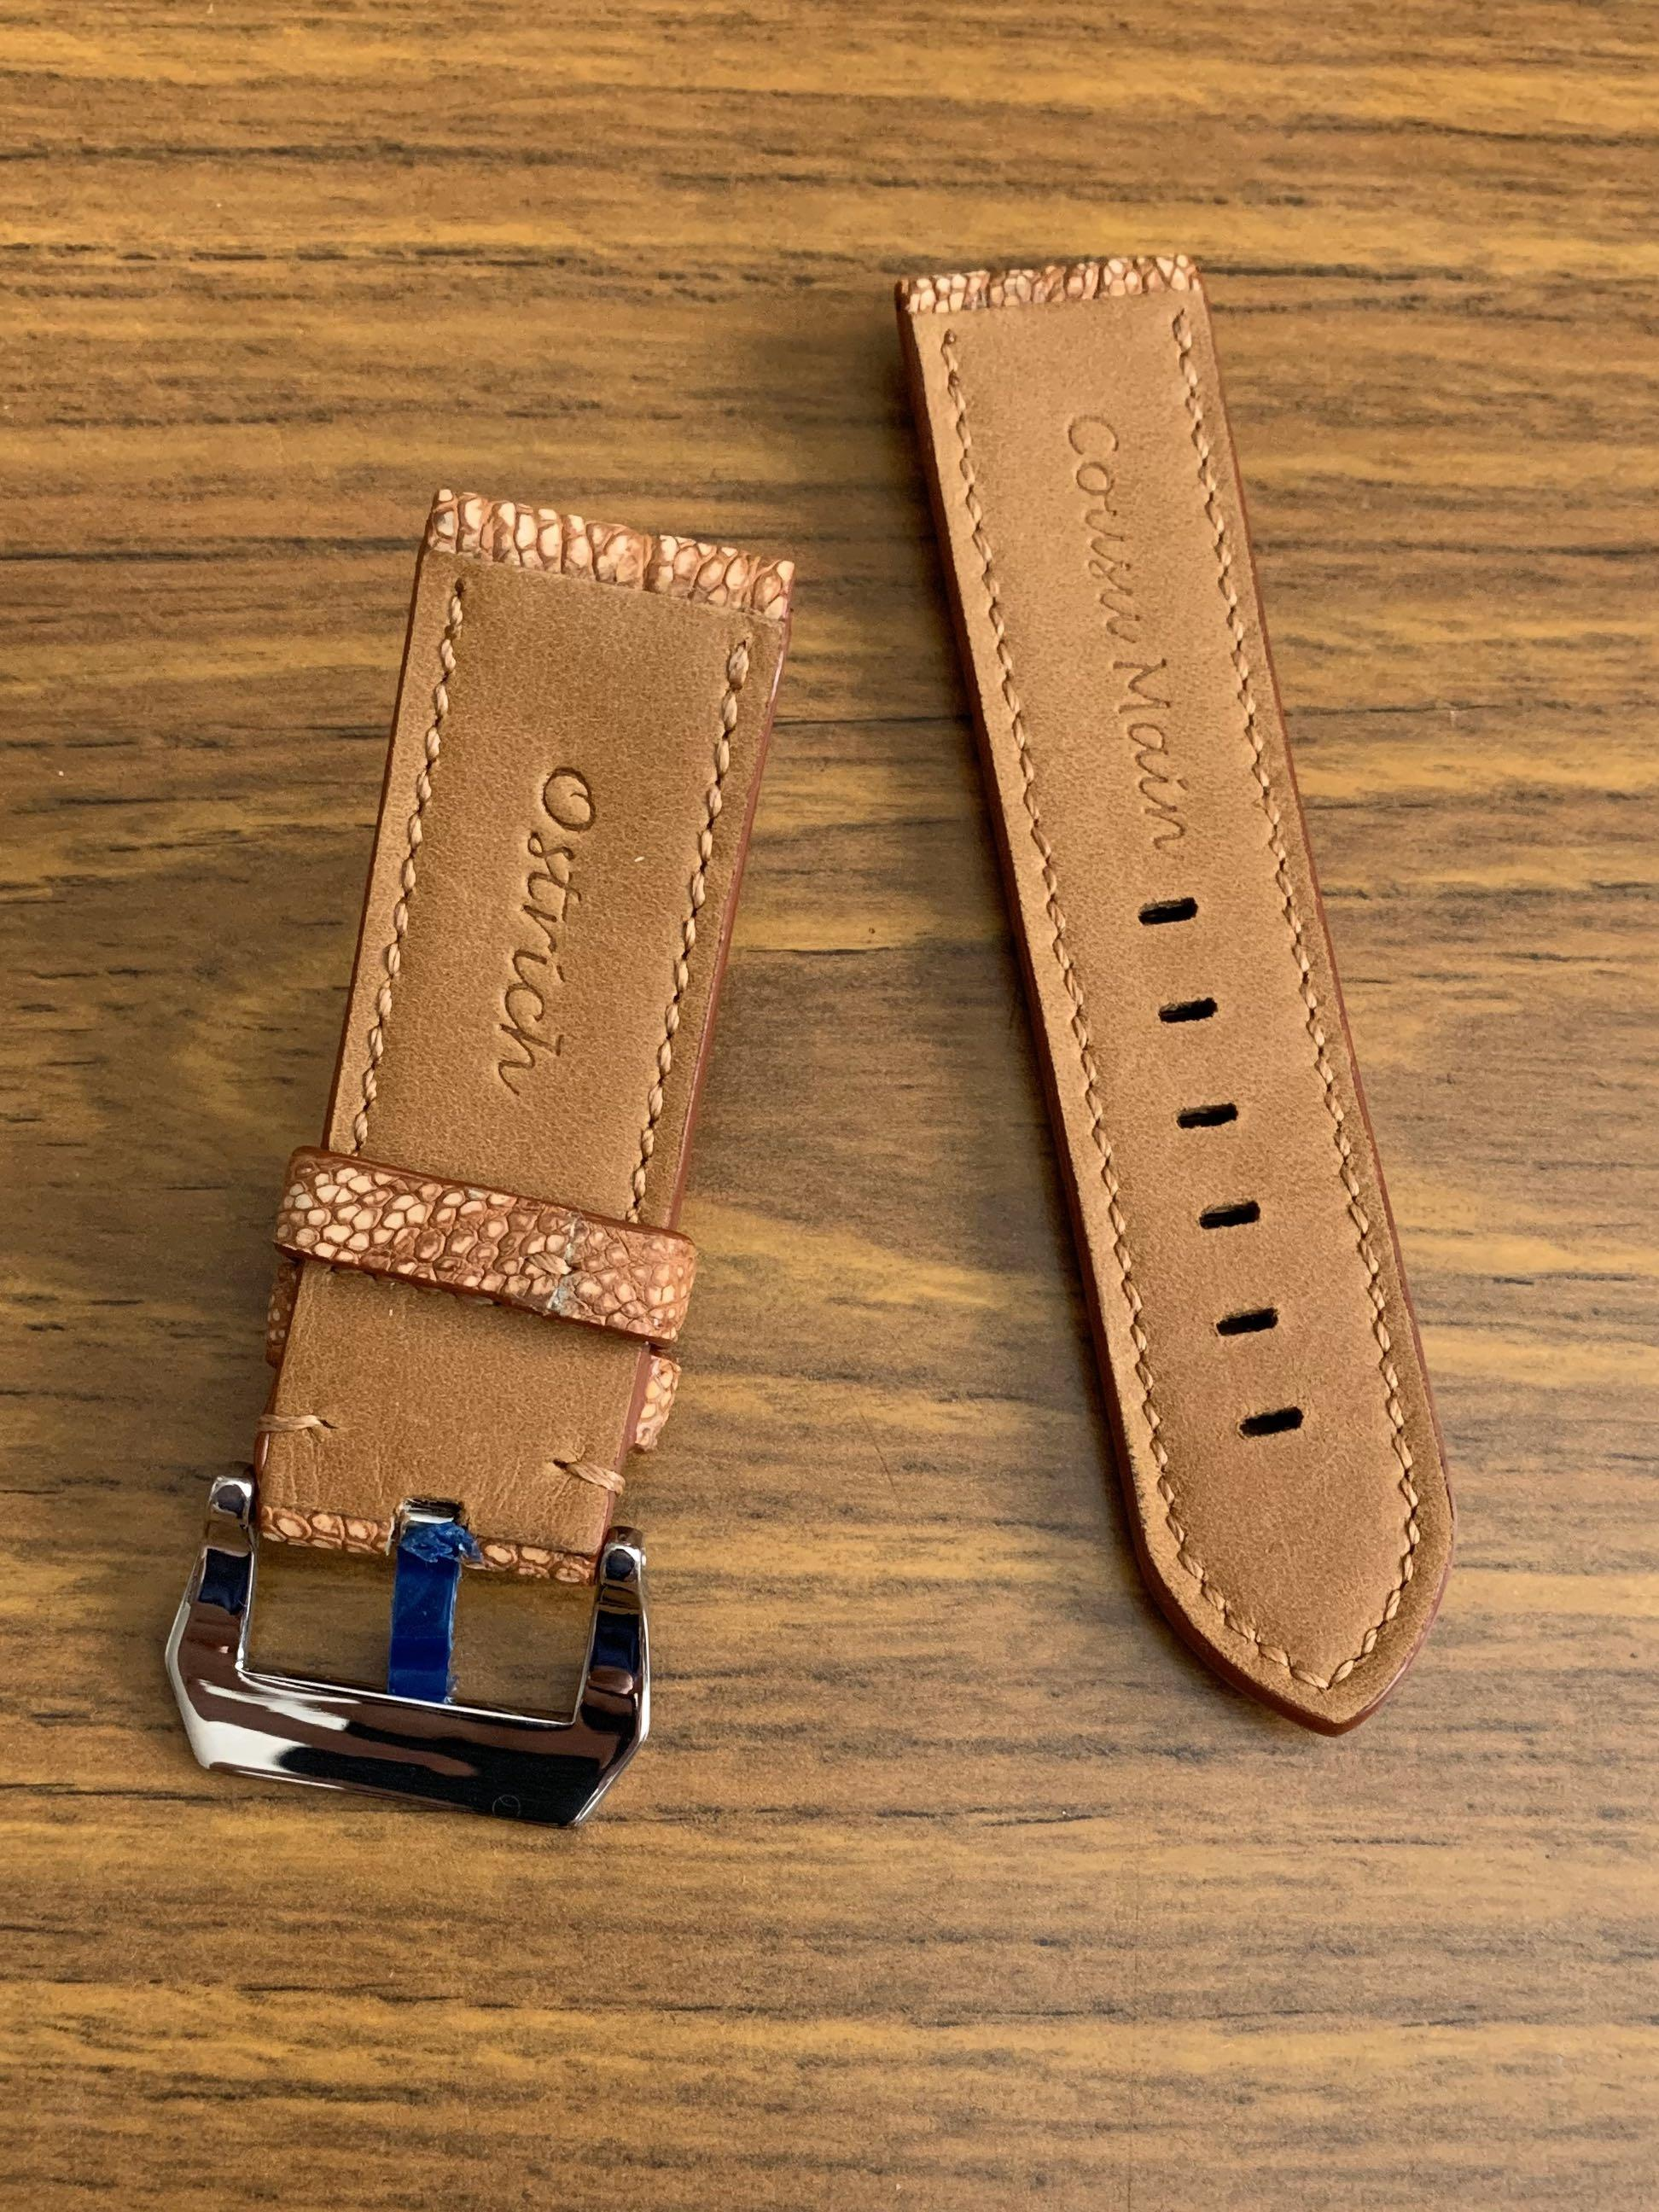 24mm/24mm Authentic Whiskey Brown Ostrich Leg Small Scales Leather Watch Strap NUBUCK texture-tanned - (very unique texture, only one piece, once sold no more 😊) (Standard length: L-120mm, S-75mm)